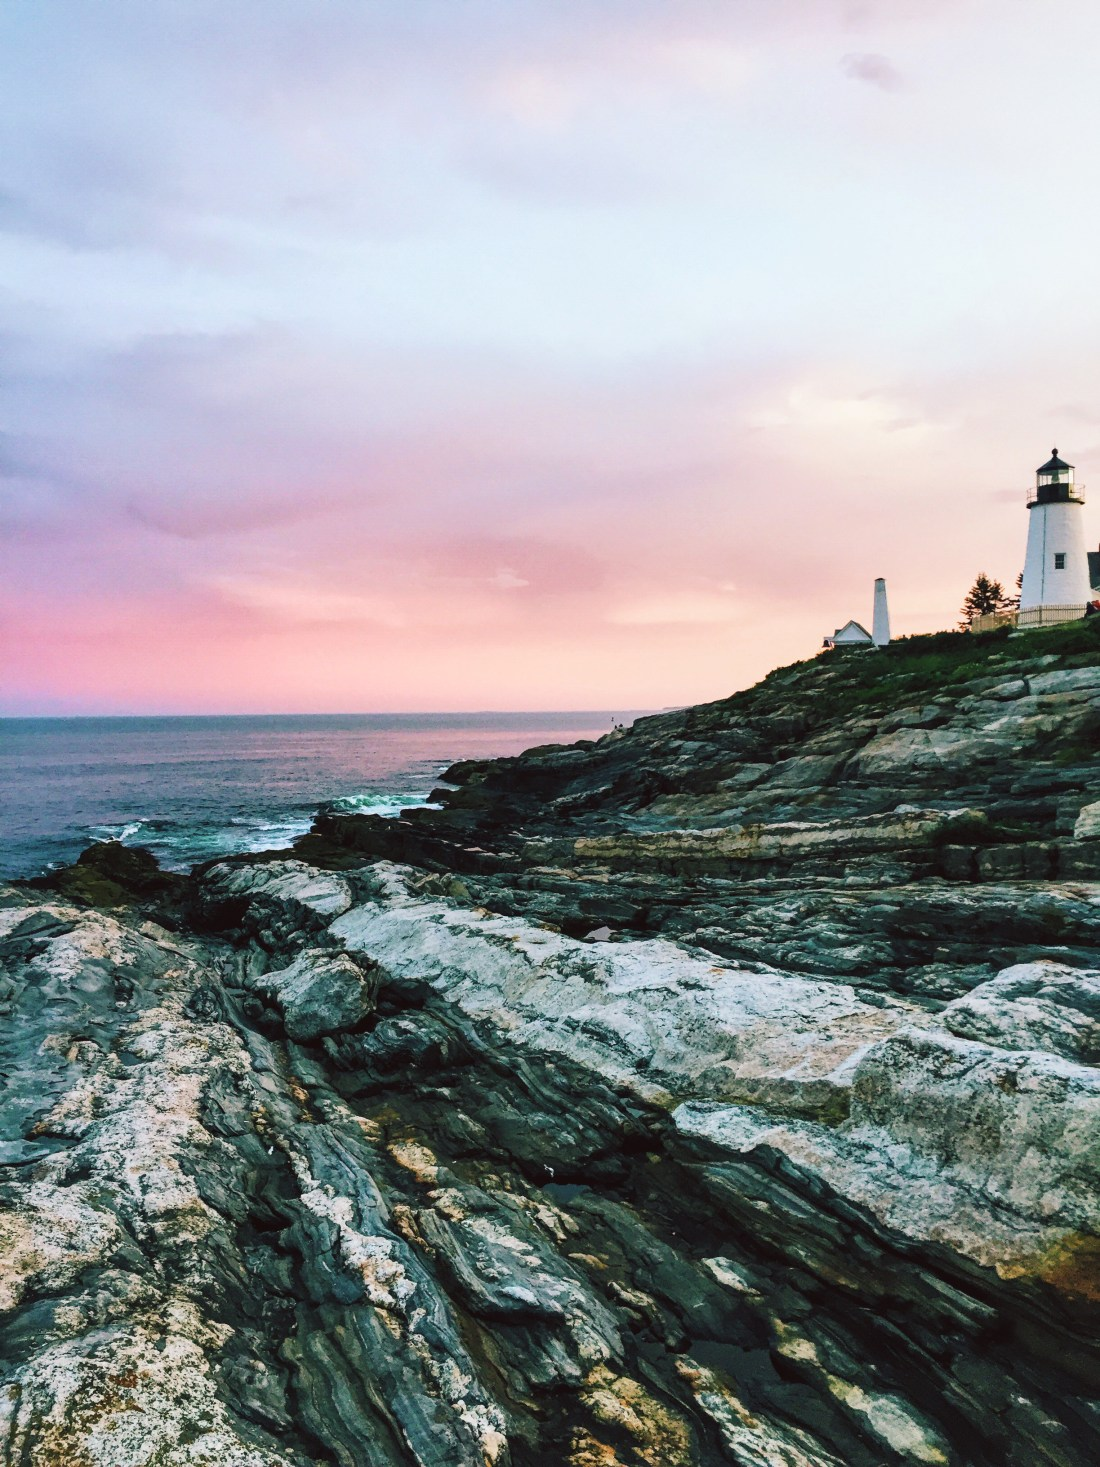 Blogging Journey | Creative Entrepreneur | Summer In Maine | Travel Blogger | Maine Lighthouse | Coast of Maine | Sunset over the Ocean | Photo Inspiration via @elanaloo + elanaloo.com